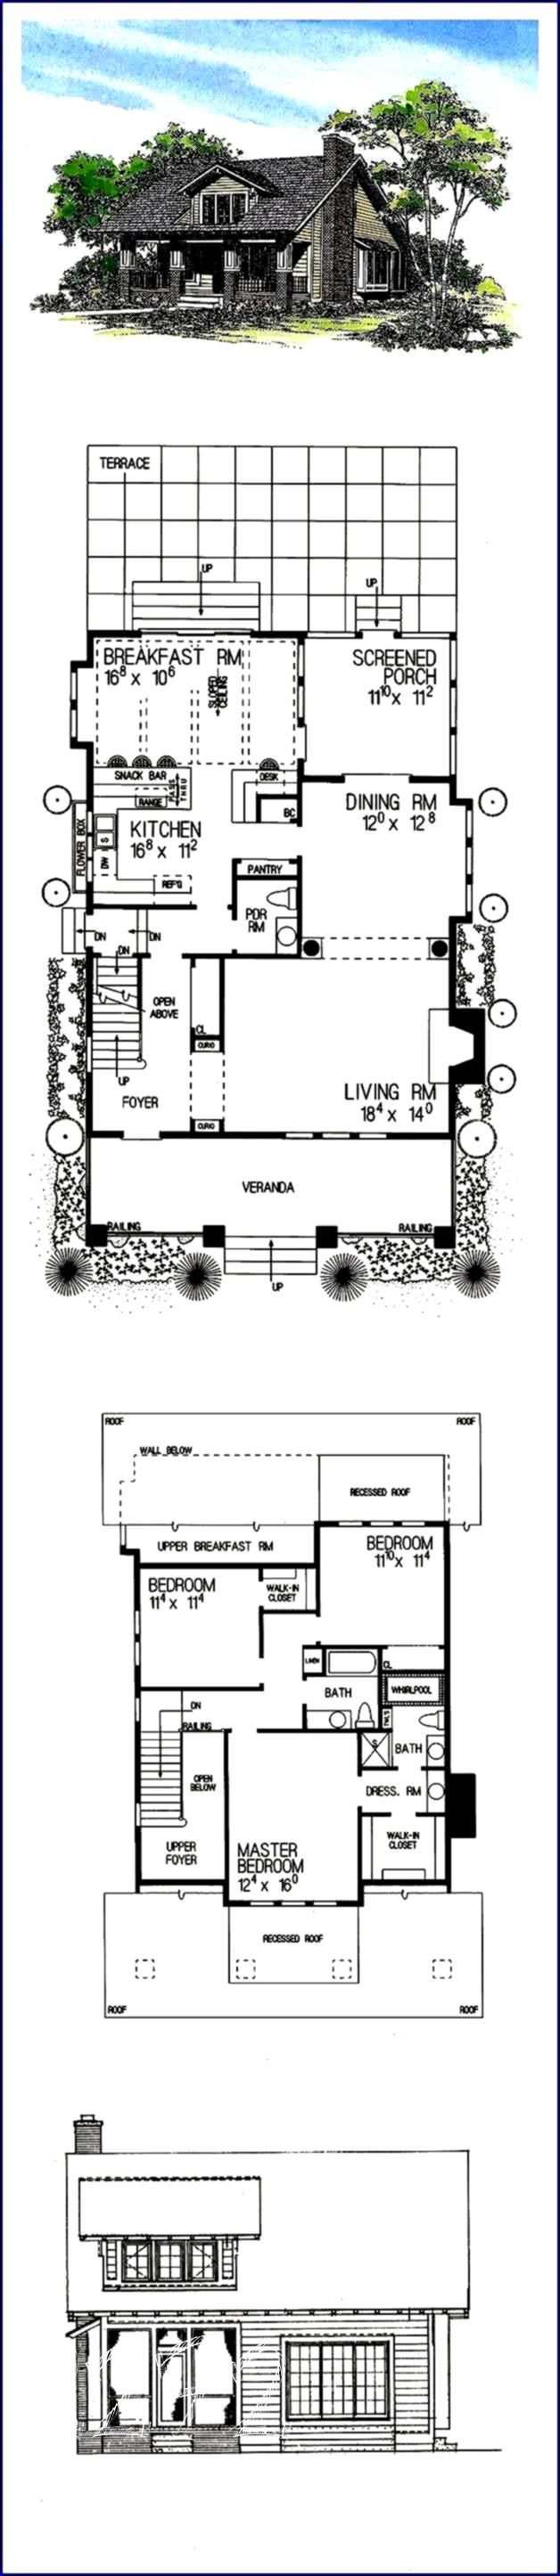 Apartments Houseplans Inawesome Newplans Lawhouse Awesome Style Suite Plans Inlaw House With Home 227 In 2020 New House Plans Box Style House House Plans